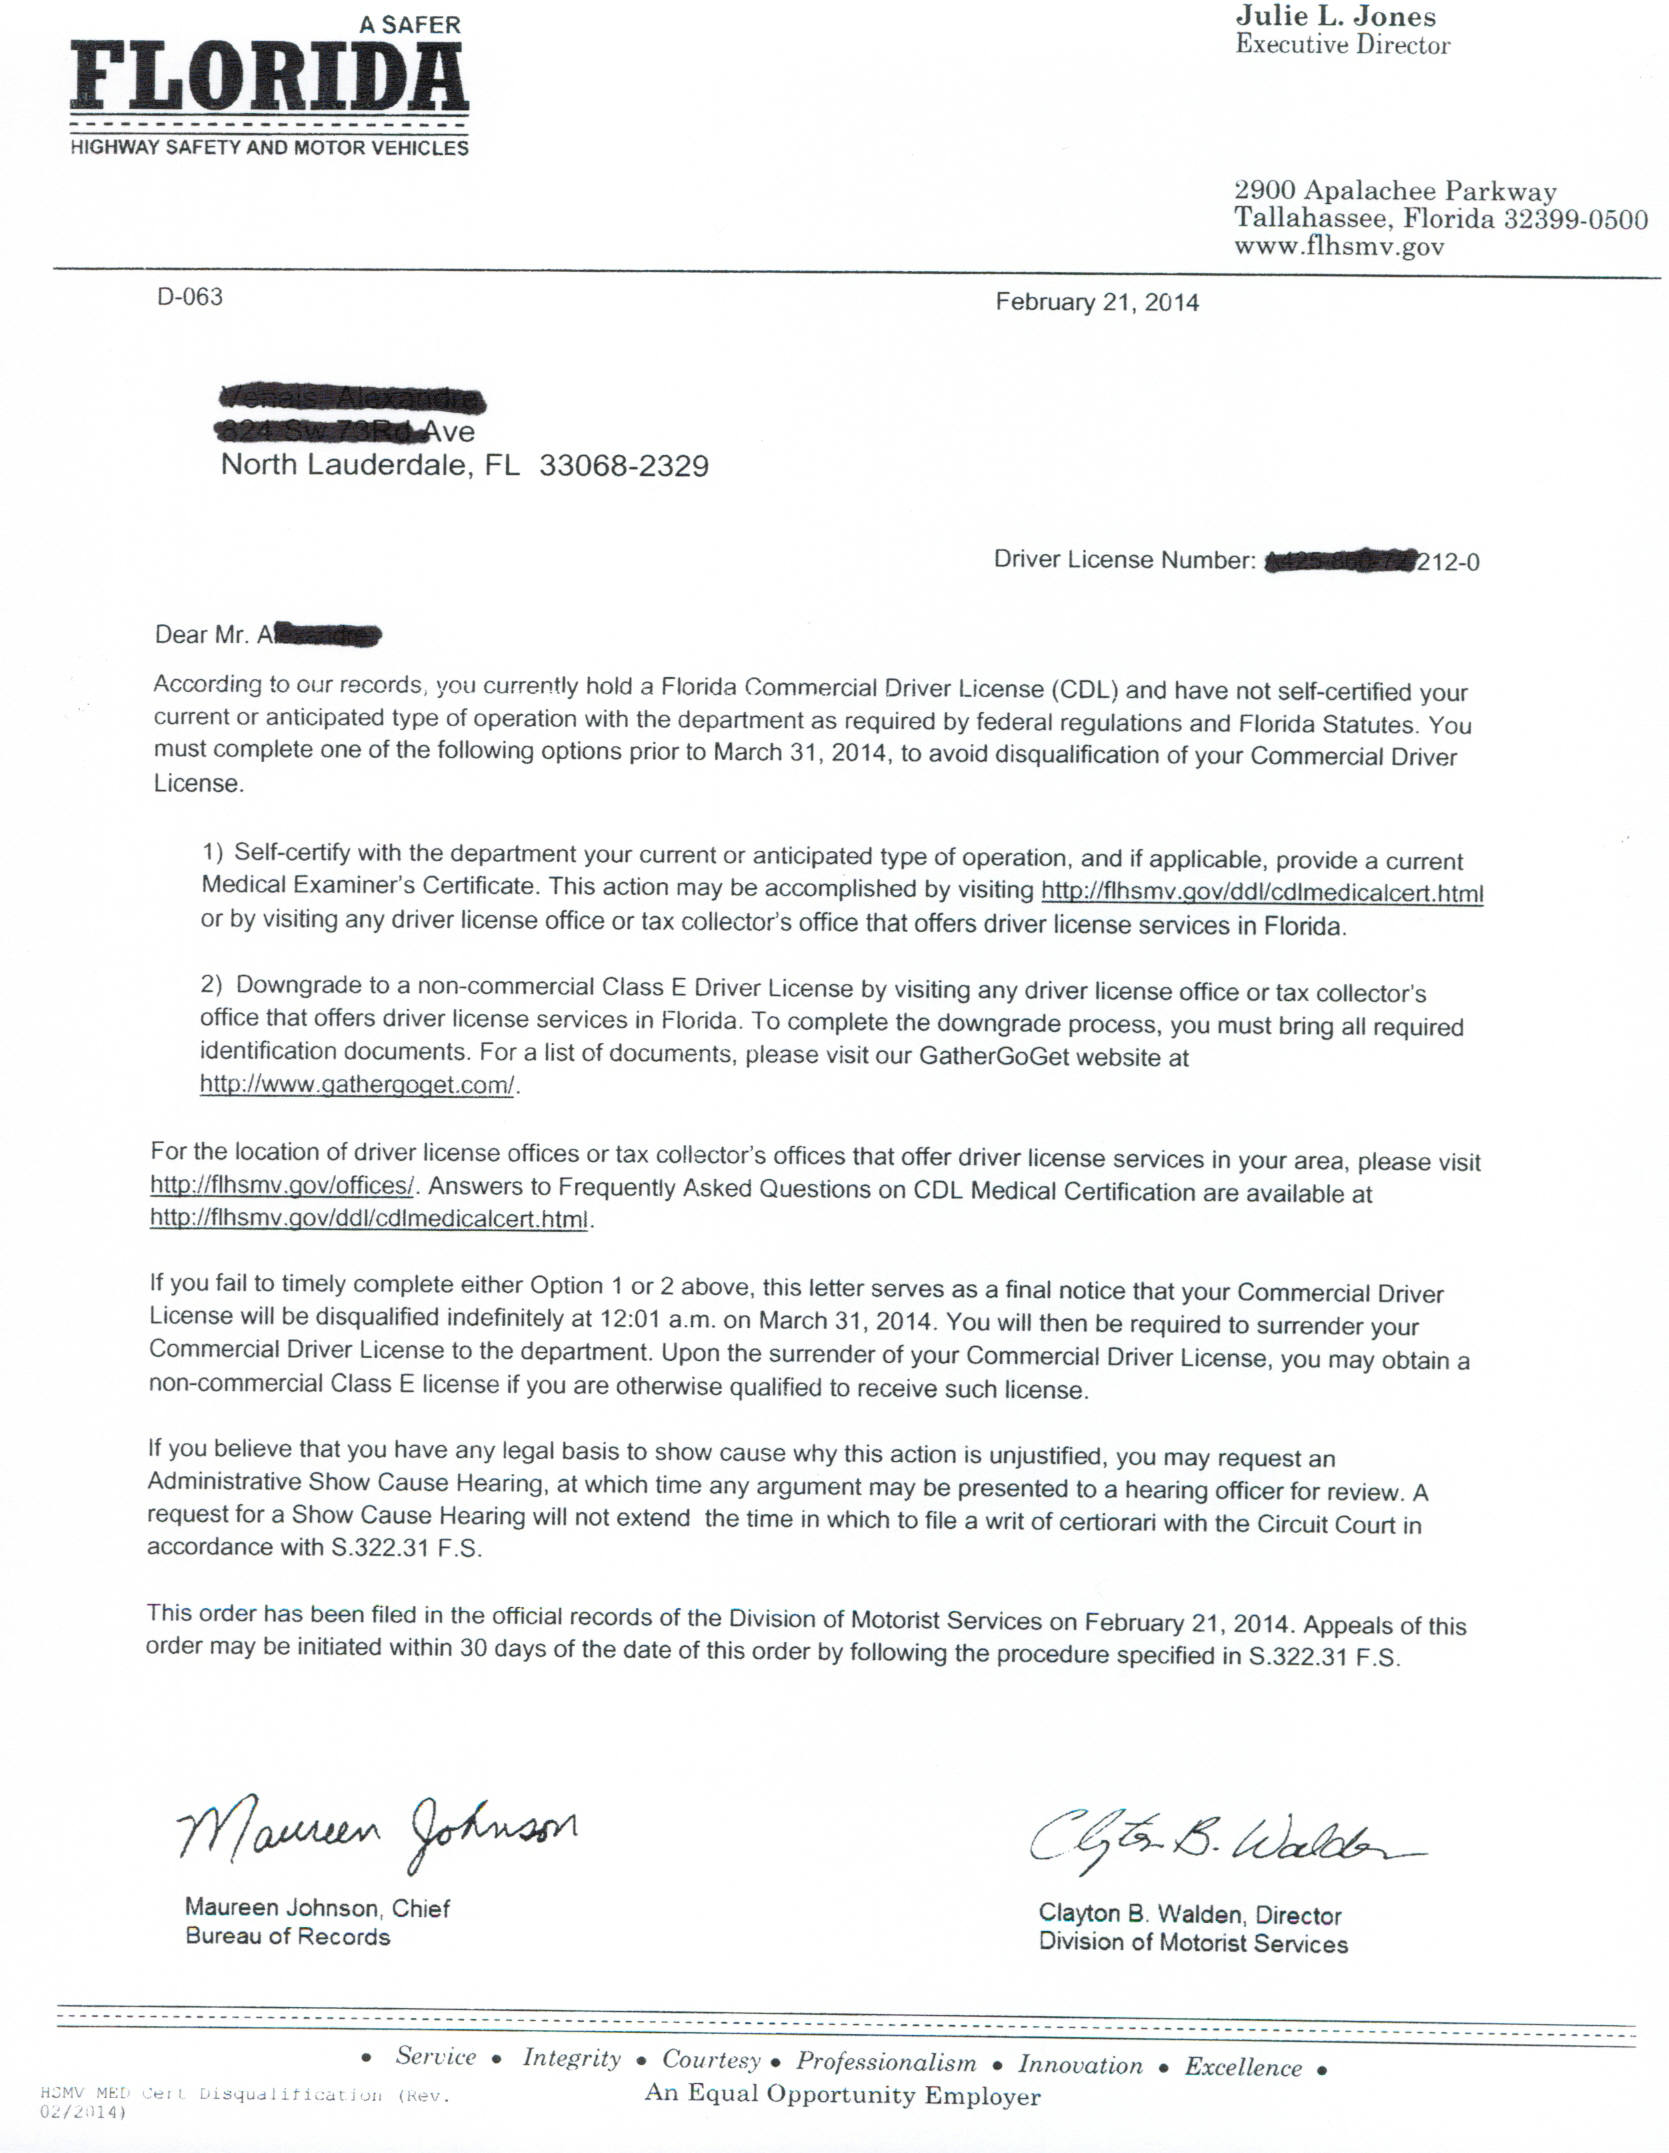 CDL Disqualification Letter Florida DMV